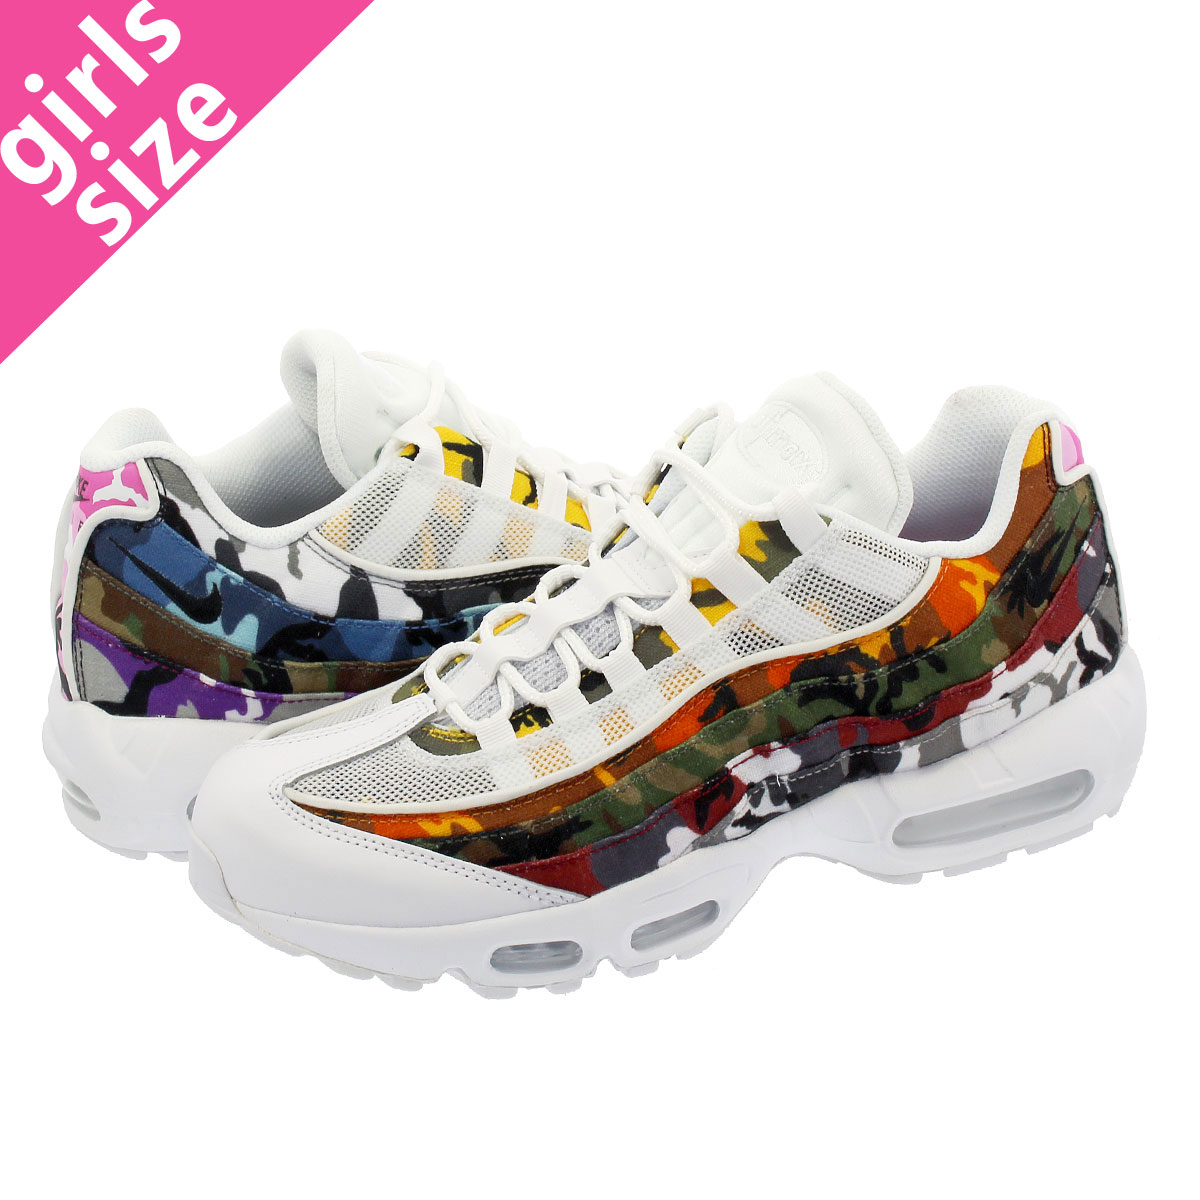 NIKE AIR MAX 95 ERDL PARTY ナイキ エア マックス 95 WHITE/MULTI CAMO ar4473-100